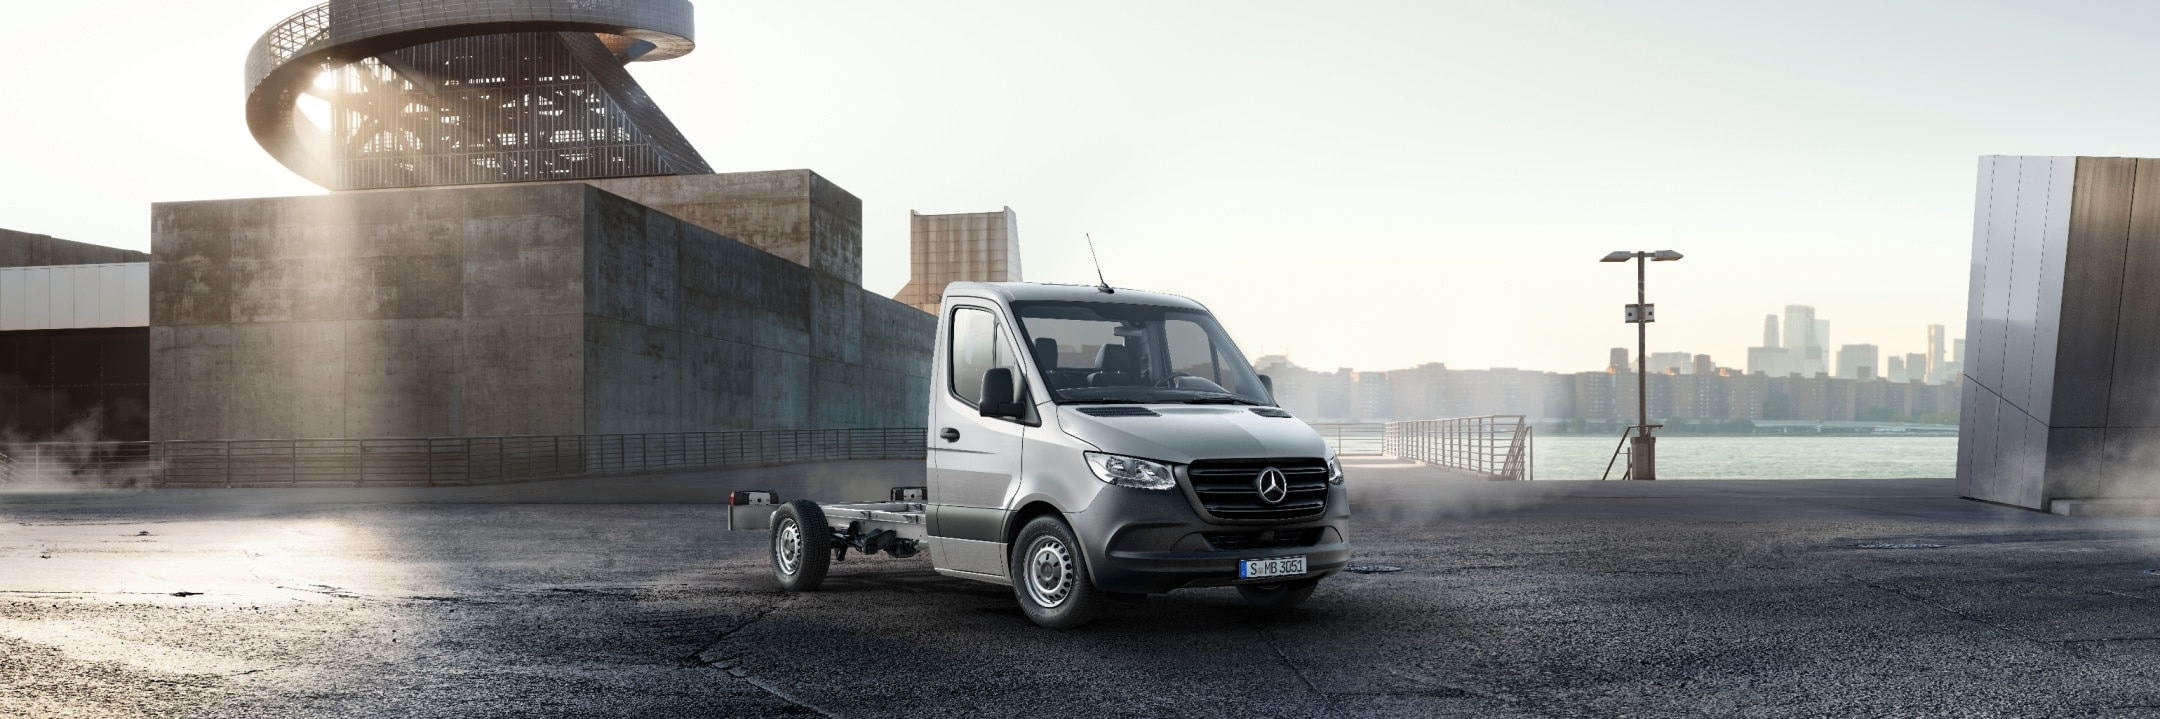 Equipment and Accessories of Sprinter Chassis Cab